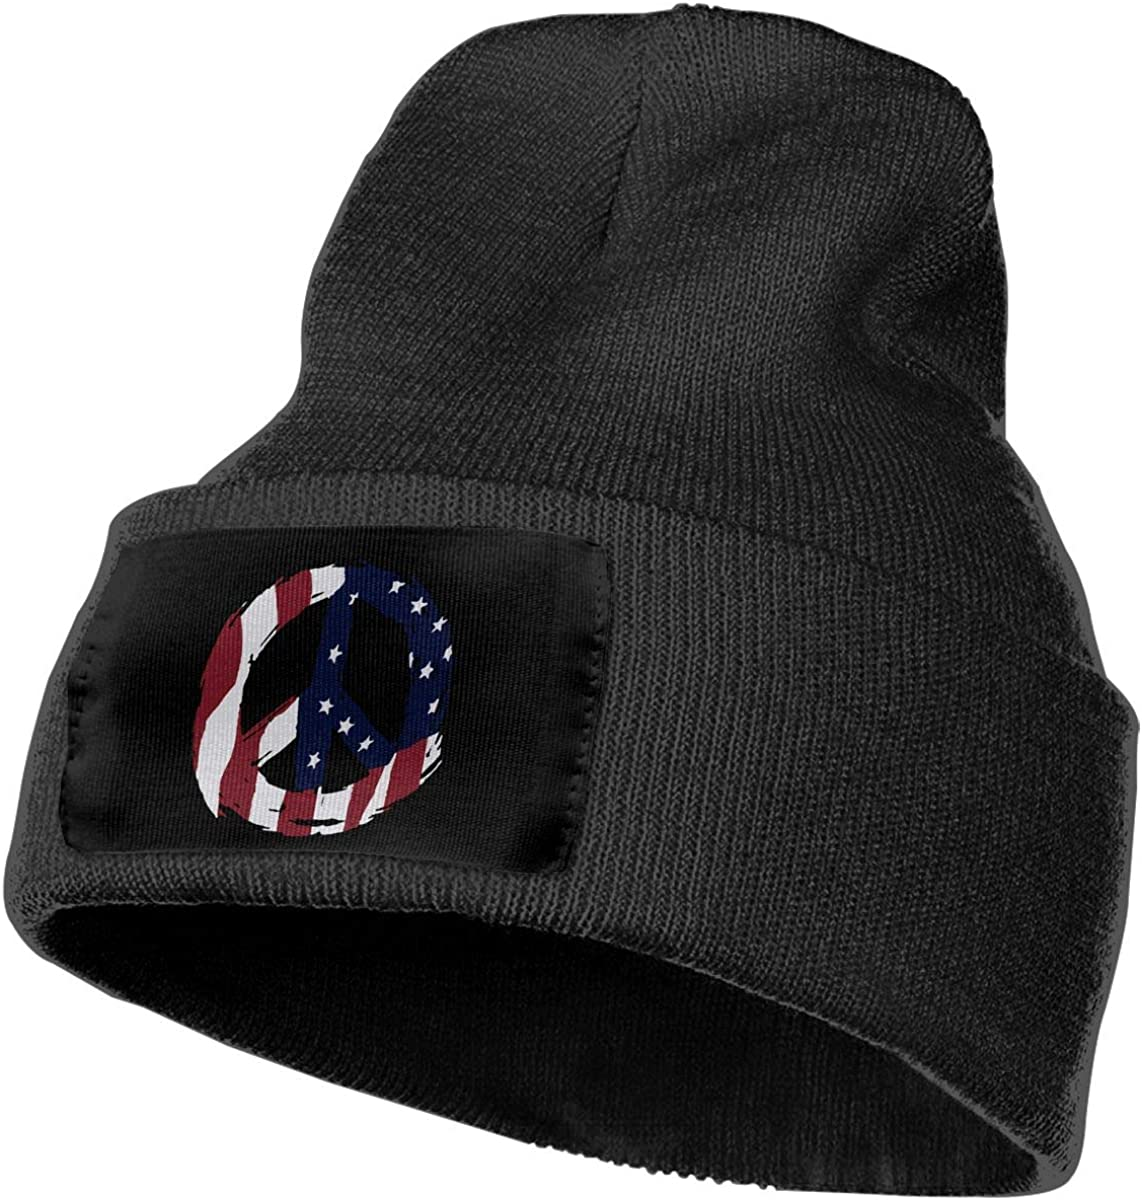 COLLJL-8 Men//Women American Flag Peace Outdoor Stretch Knit Beanies Hat Soft Winter Knit Caps